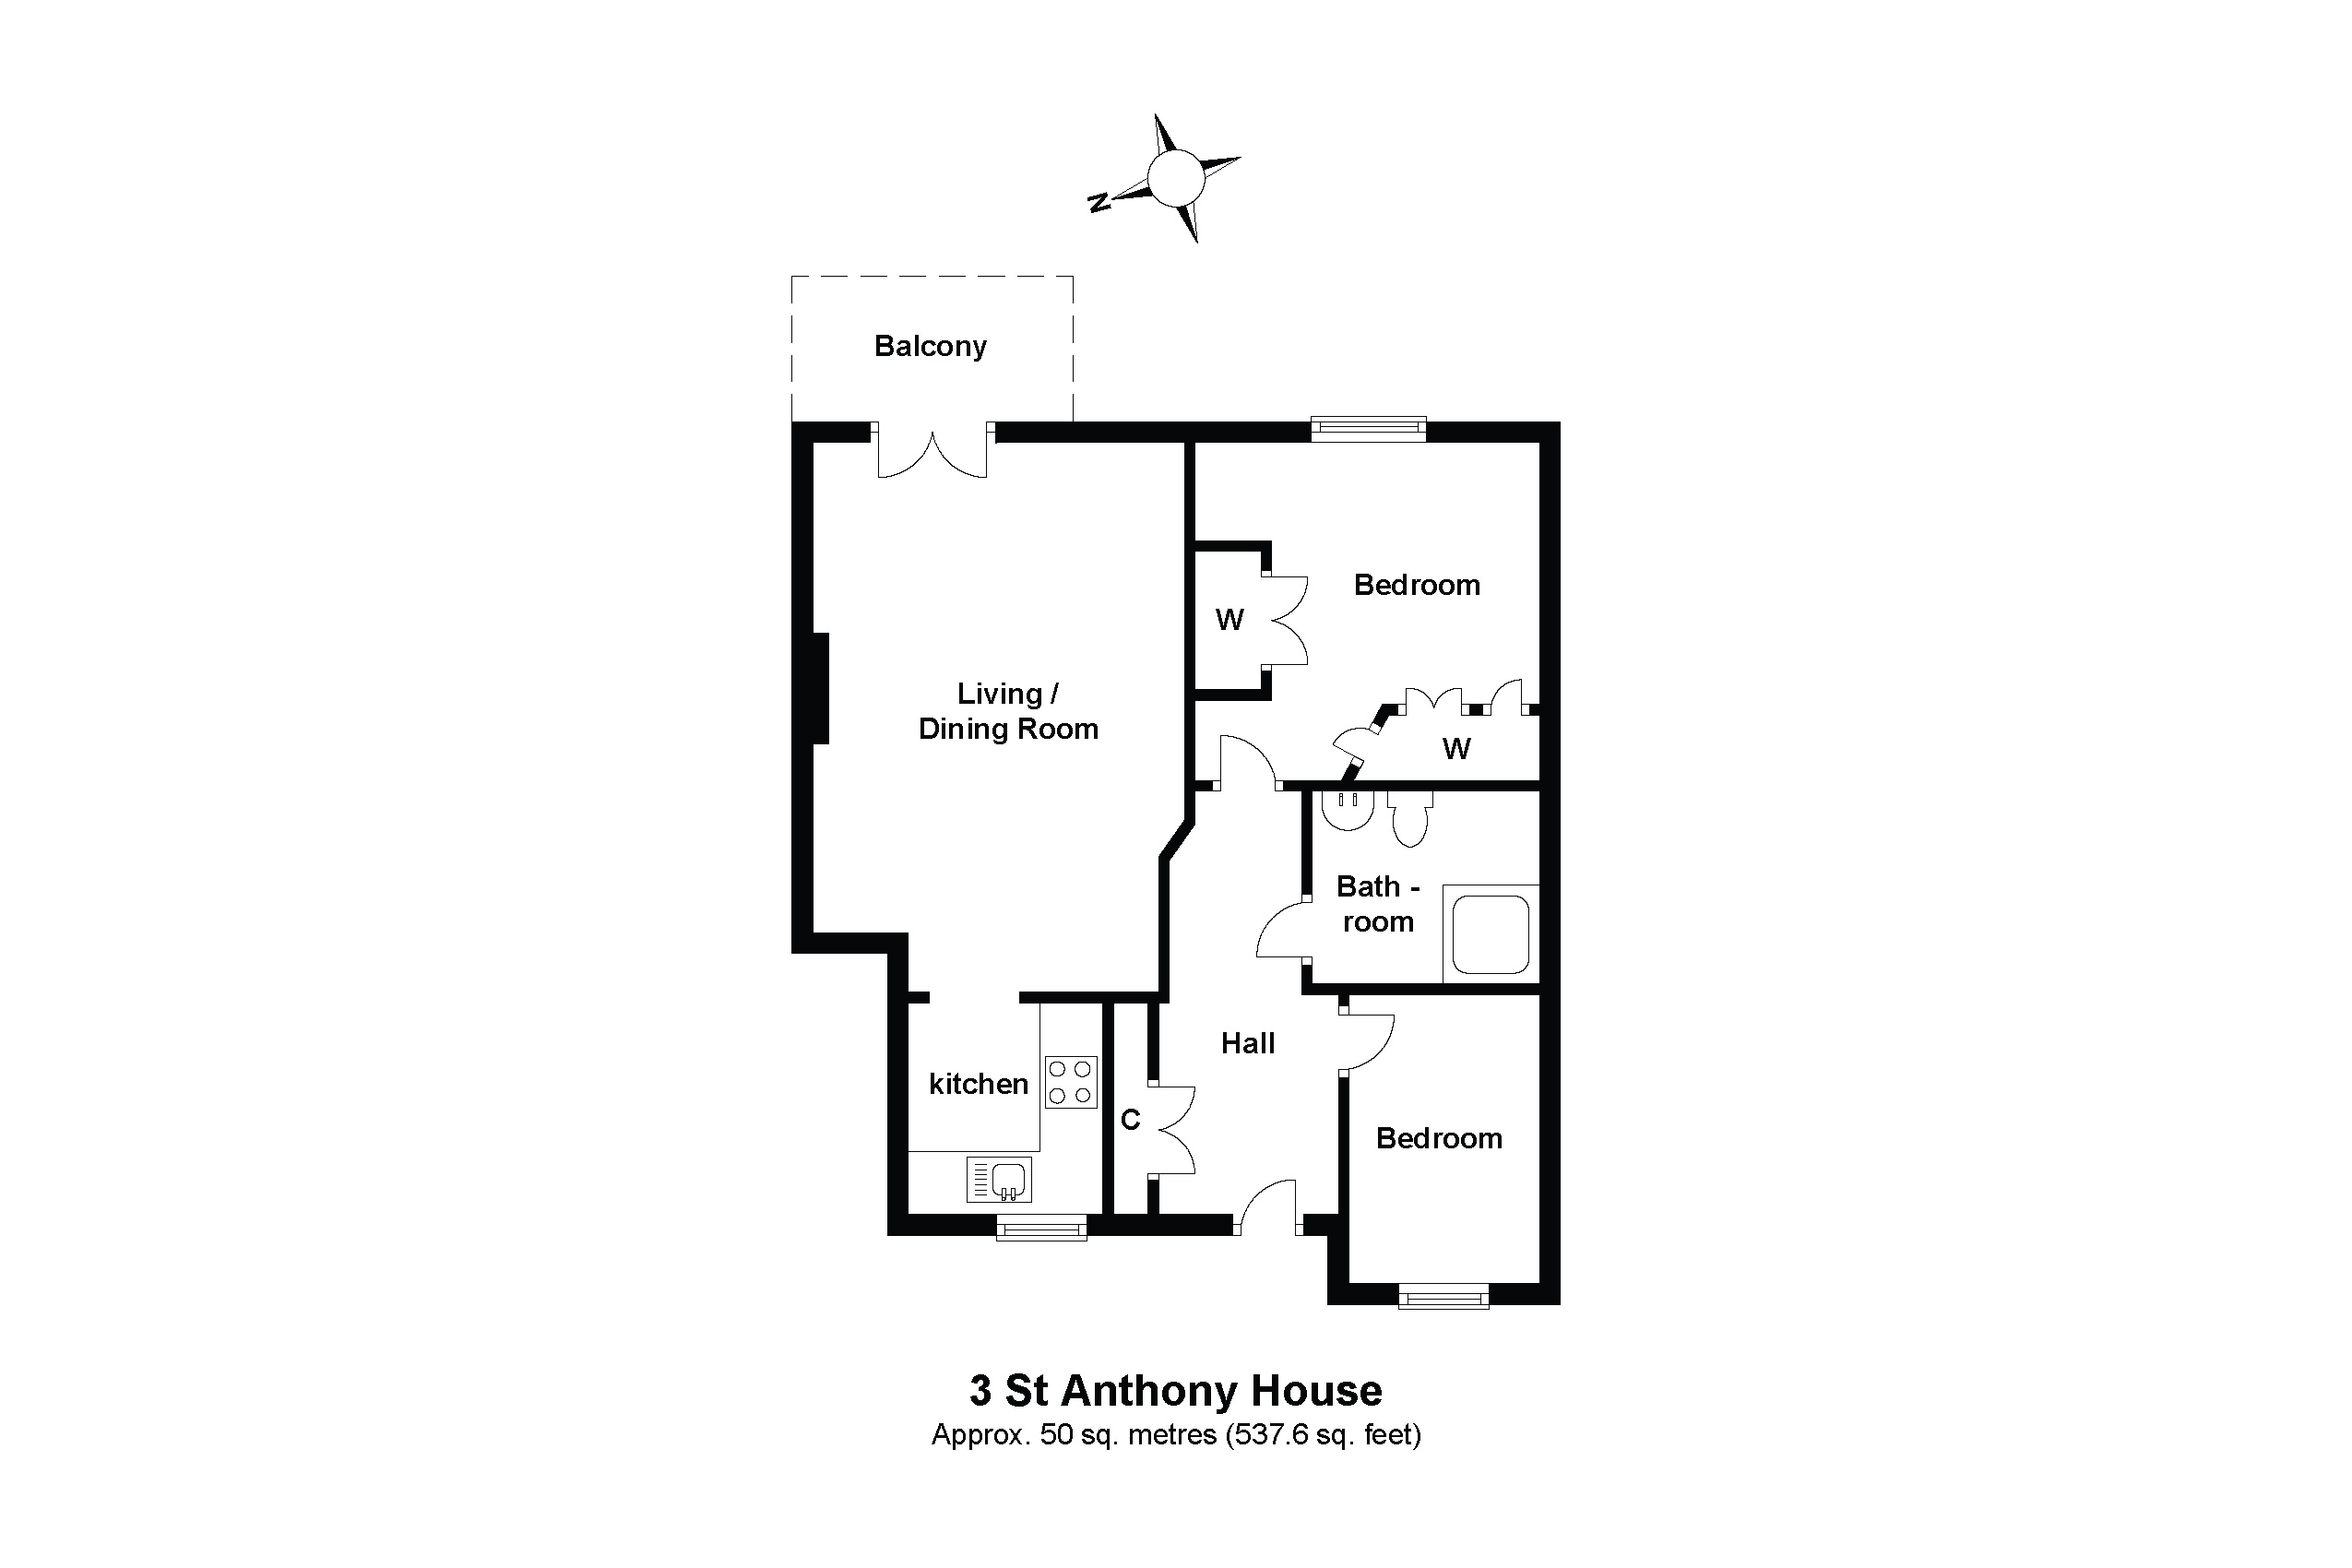 3 St Anthony House Floorplan